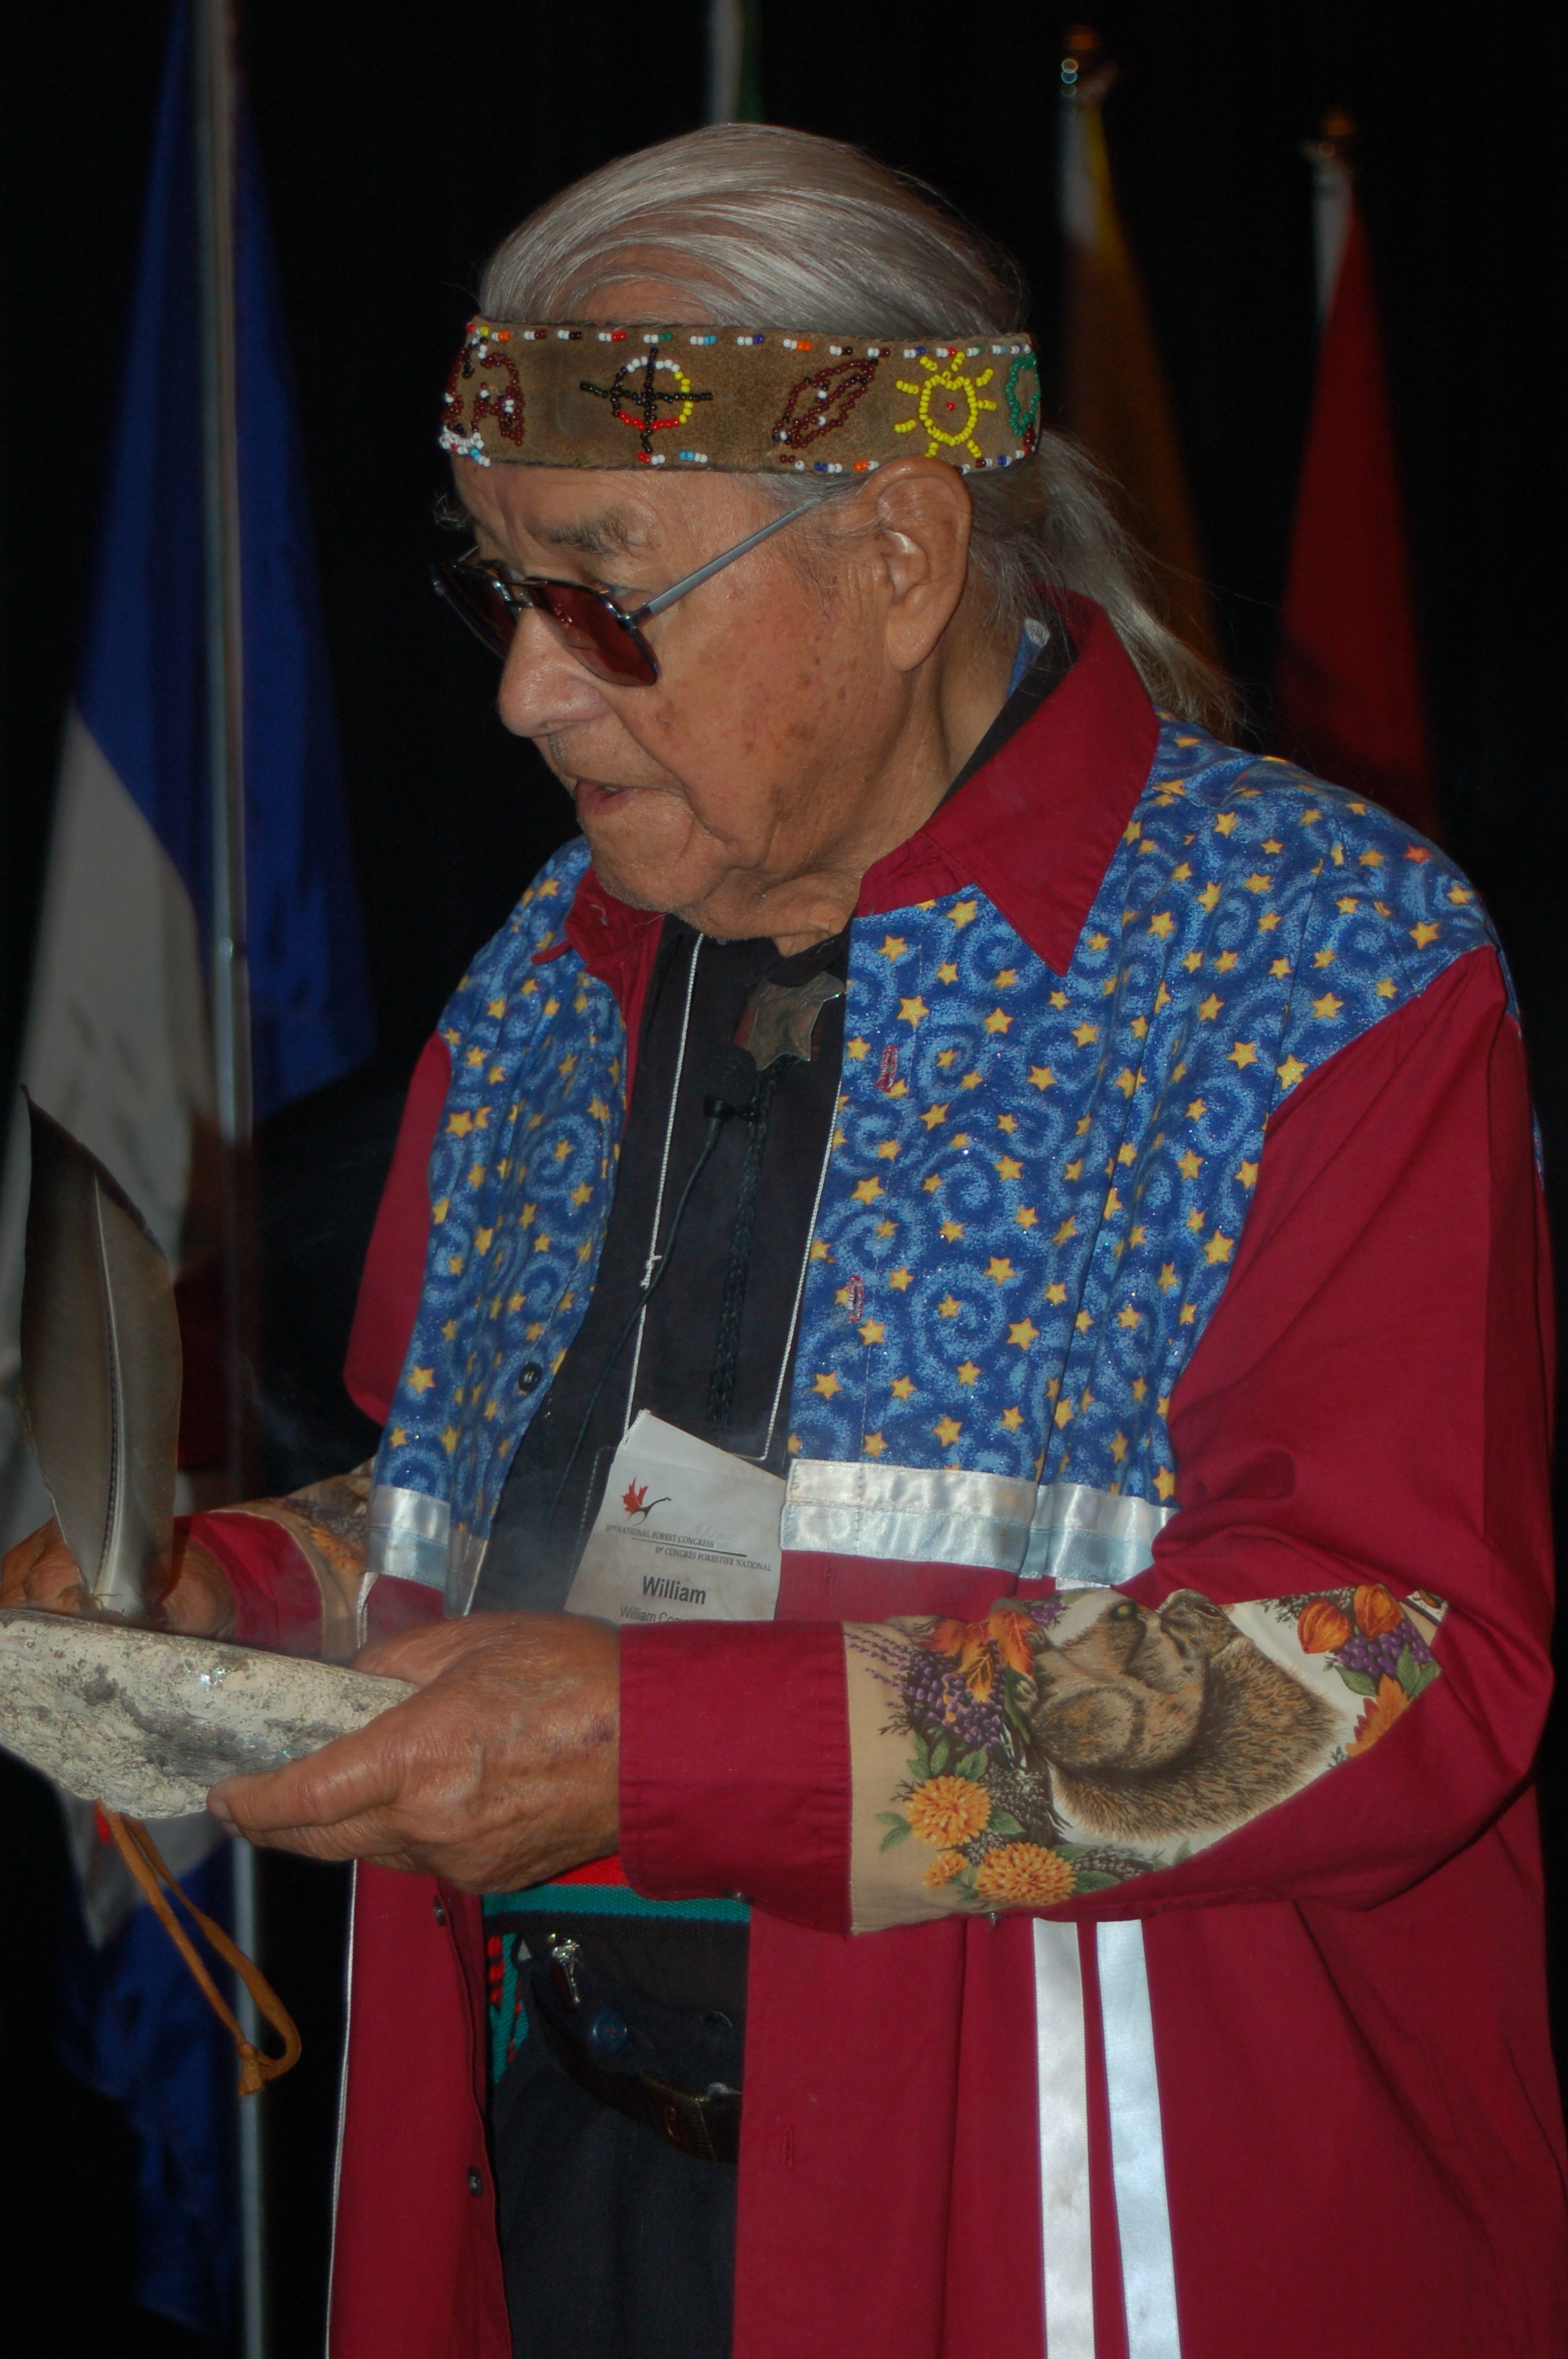 Elder William Commanda performs a smudging ceremony.